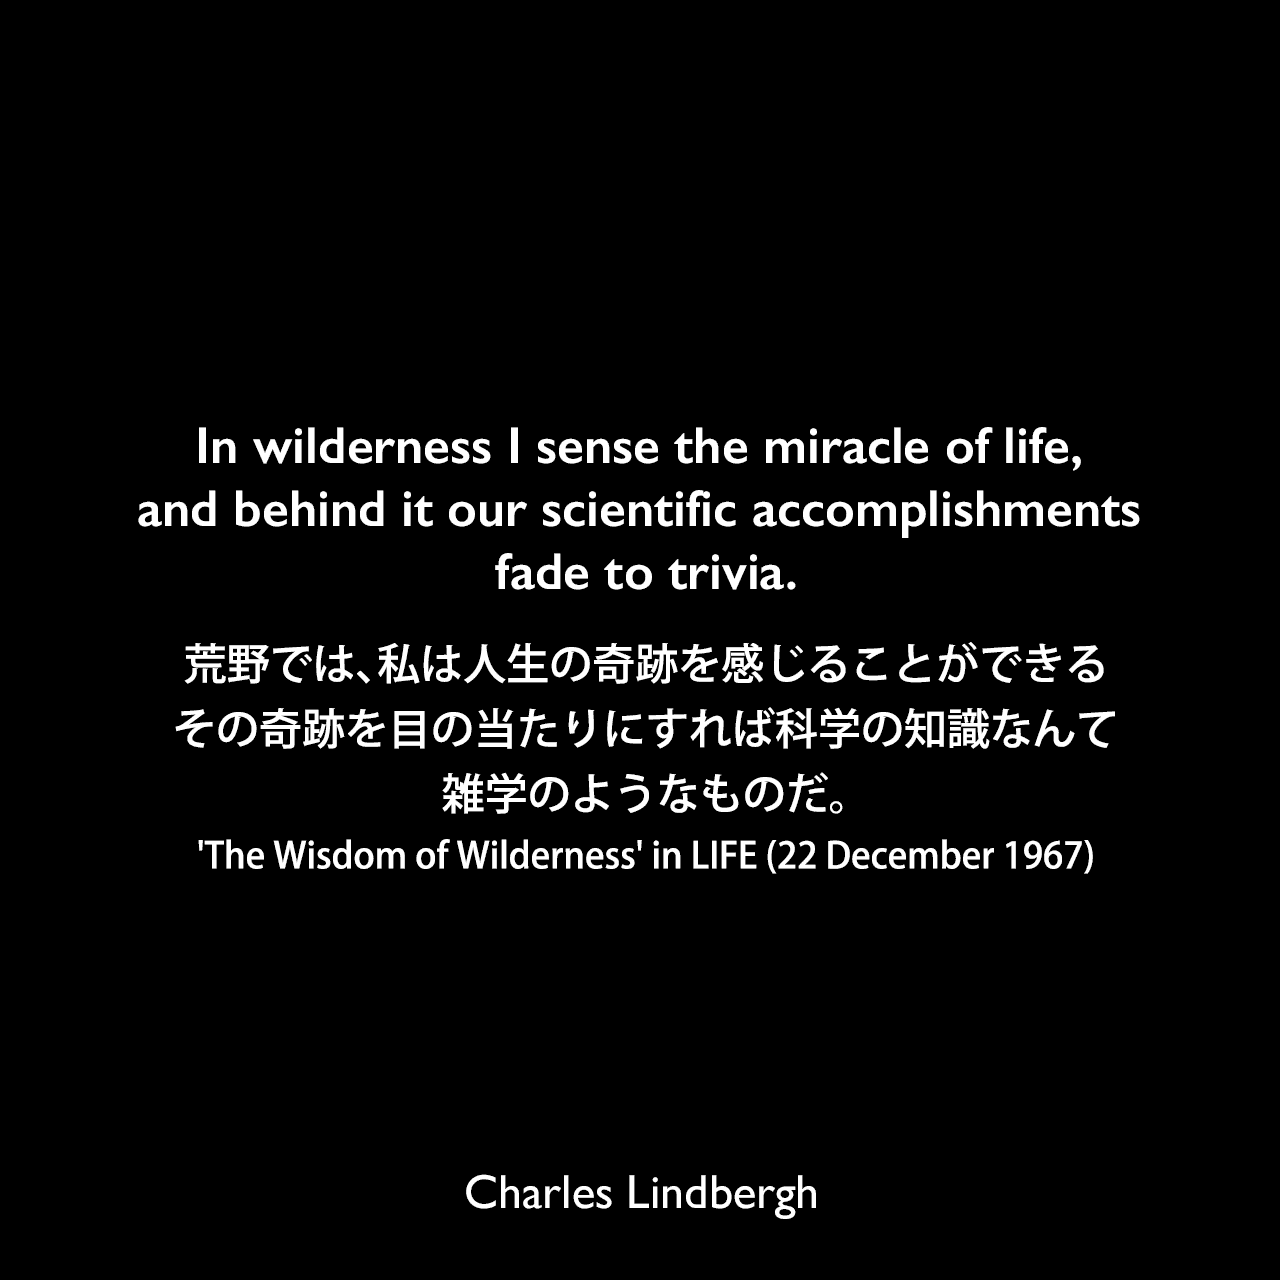 In wilderness I sense the miracle of life, and behind it our scientific accomplishments fade to trivia.荒野では、私は人生の奇跡を感じることができる、その奇跡を目の当たりにすれば科学の知識なんて雑学のようなものだ。(The Wisdom of Wilderness' in LIFE [22 December 1967])Charles Lindbergh